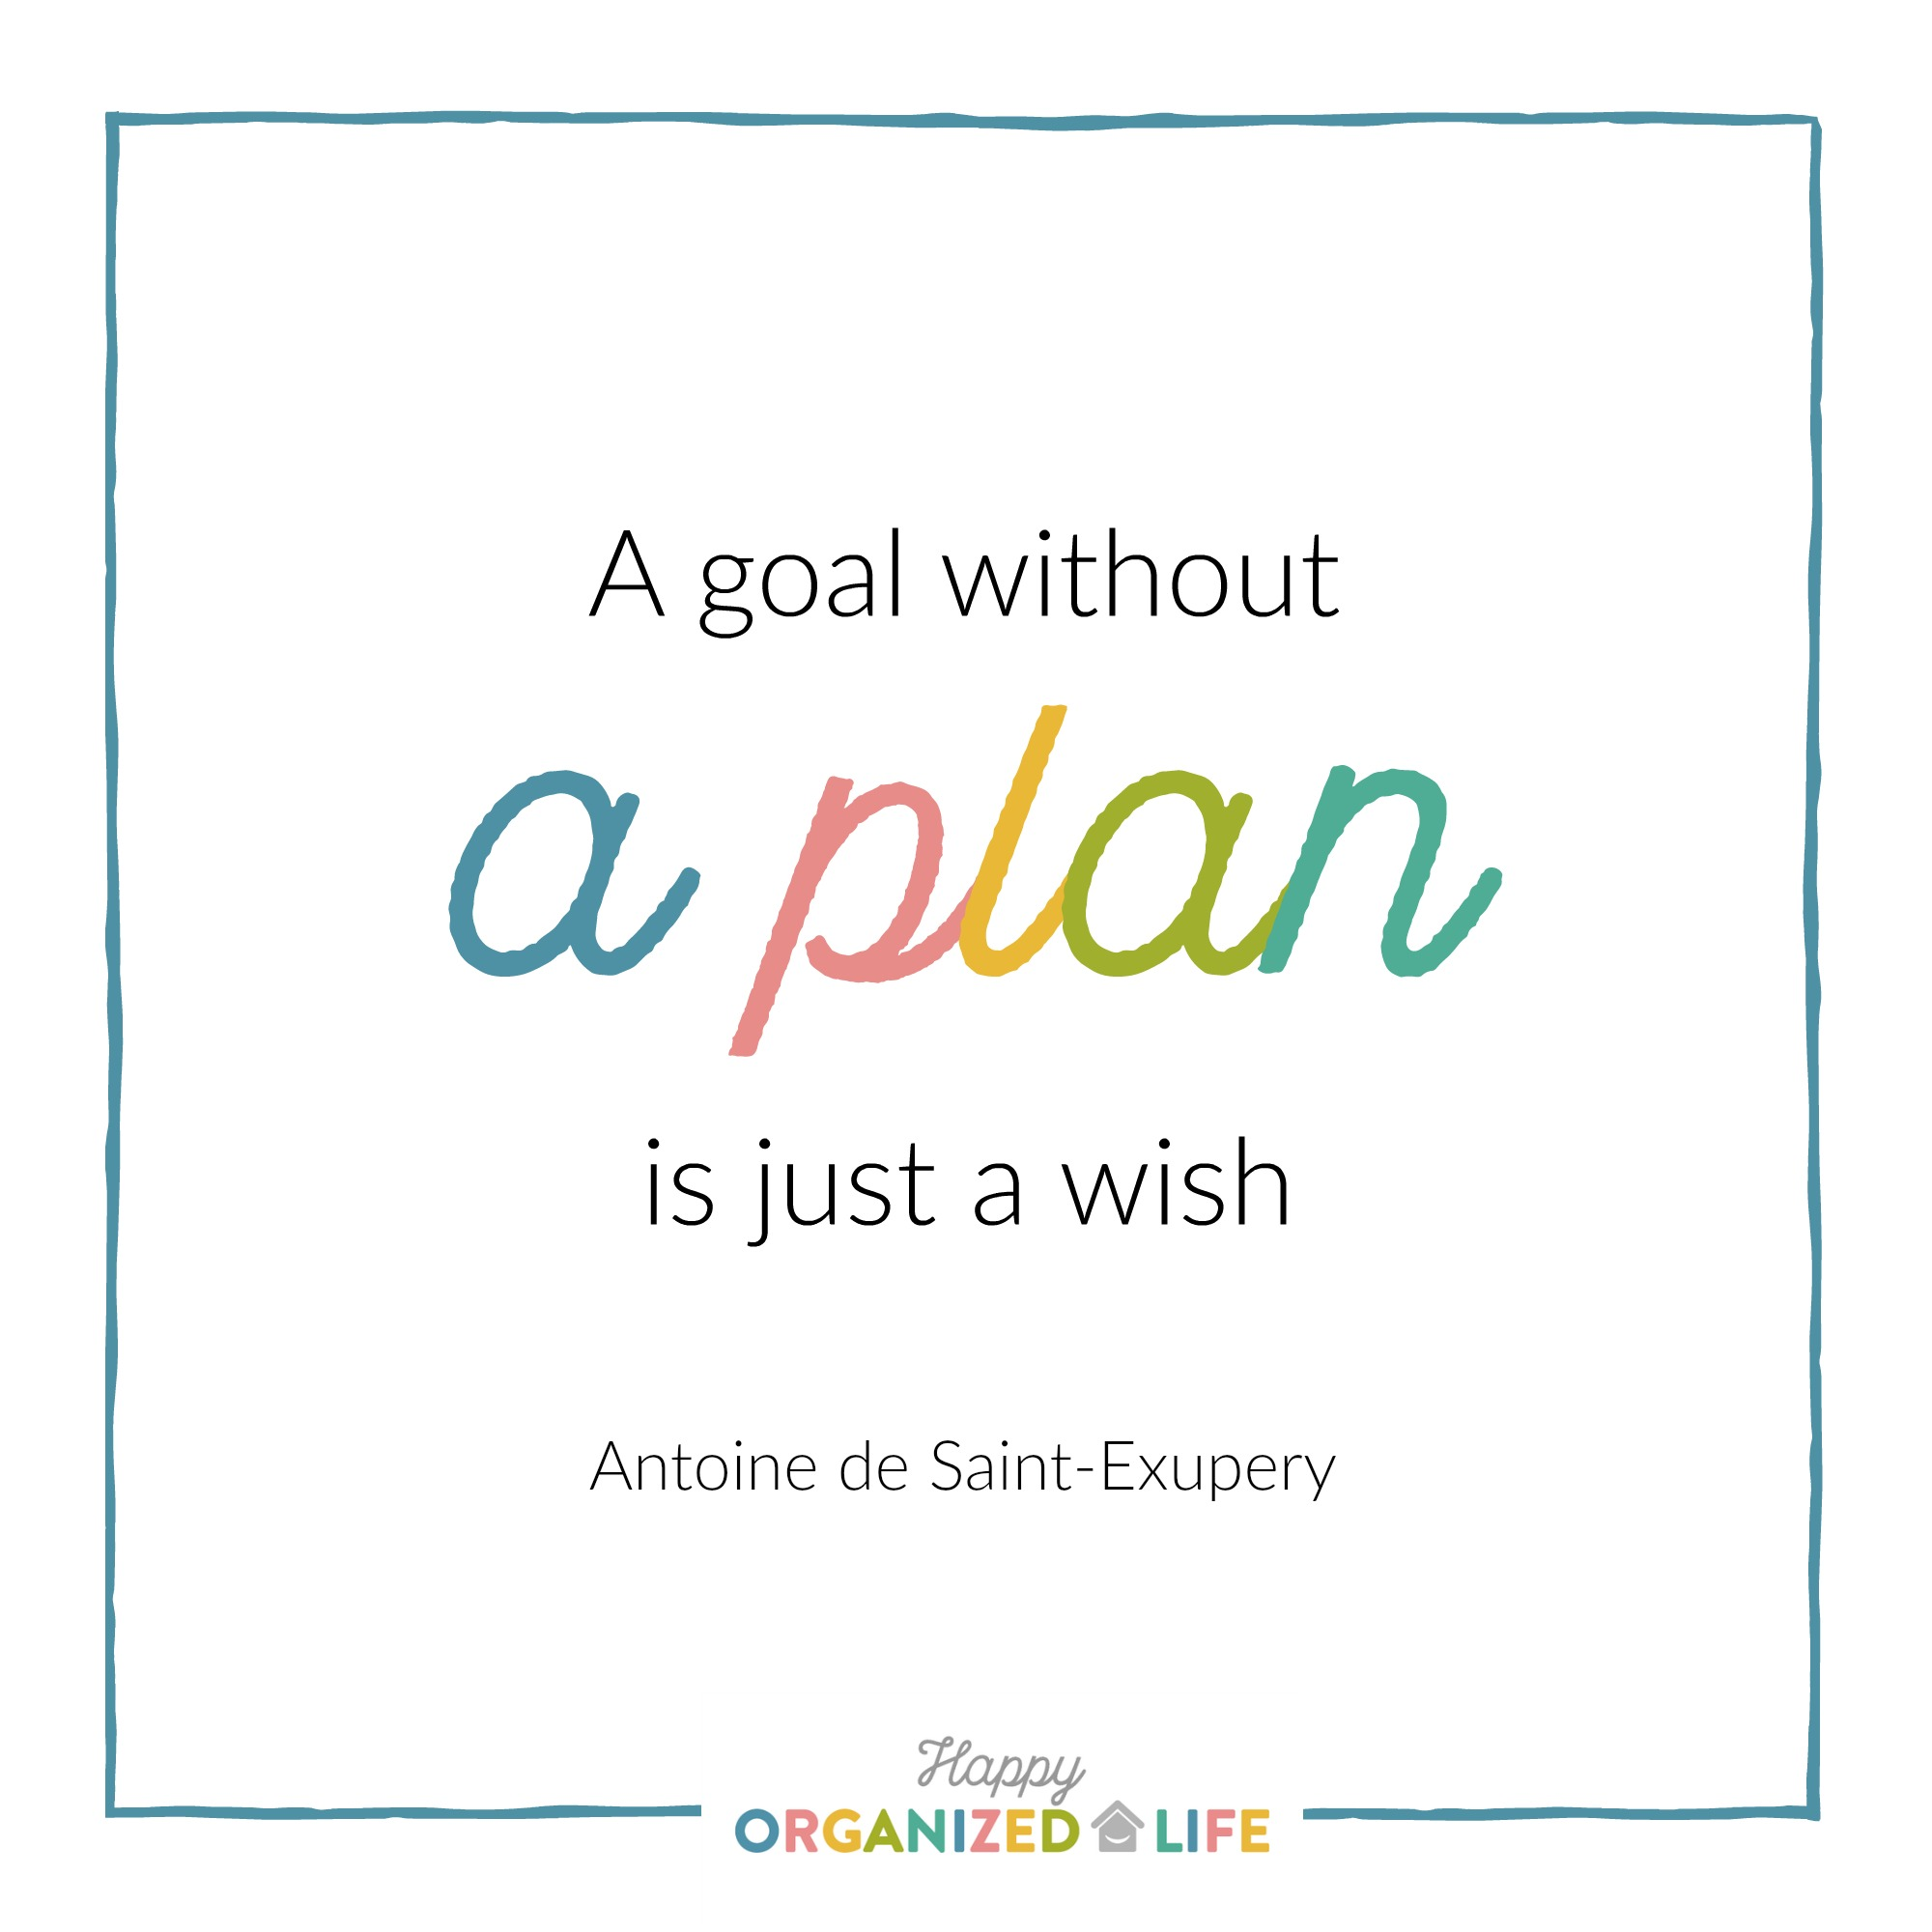 """A goal without a plan is just a wish."" Make 2018 your BEST YEAR EVER!! Setting goals and being intentional with your time can make all the difference between having a blah year and a great one! Enter to win this 2018 planning and goal setting bundle, and have your best year ever! One lucky winner will win: a printable 2018 planner, printable goals workbook, and membership to the exclusive goal setting masterclass and goal achieving community so you'll get the guidance, support, and inspiration you need to make 2018 on for the books! #planner #printablecalendar #goals #2018 #calendar #printables #organization"